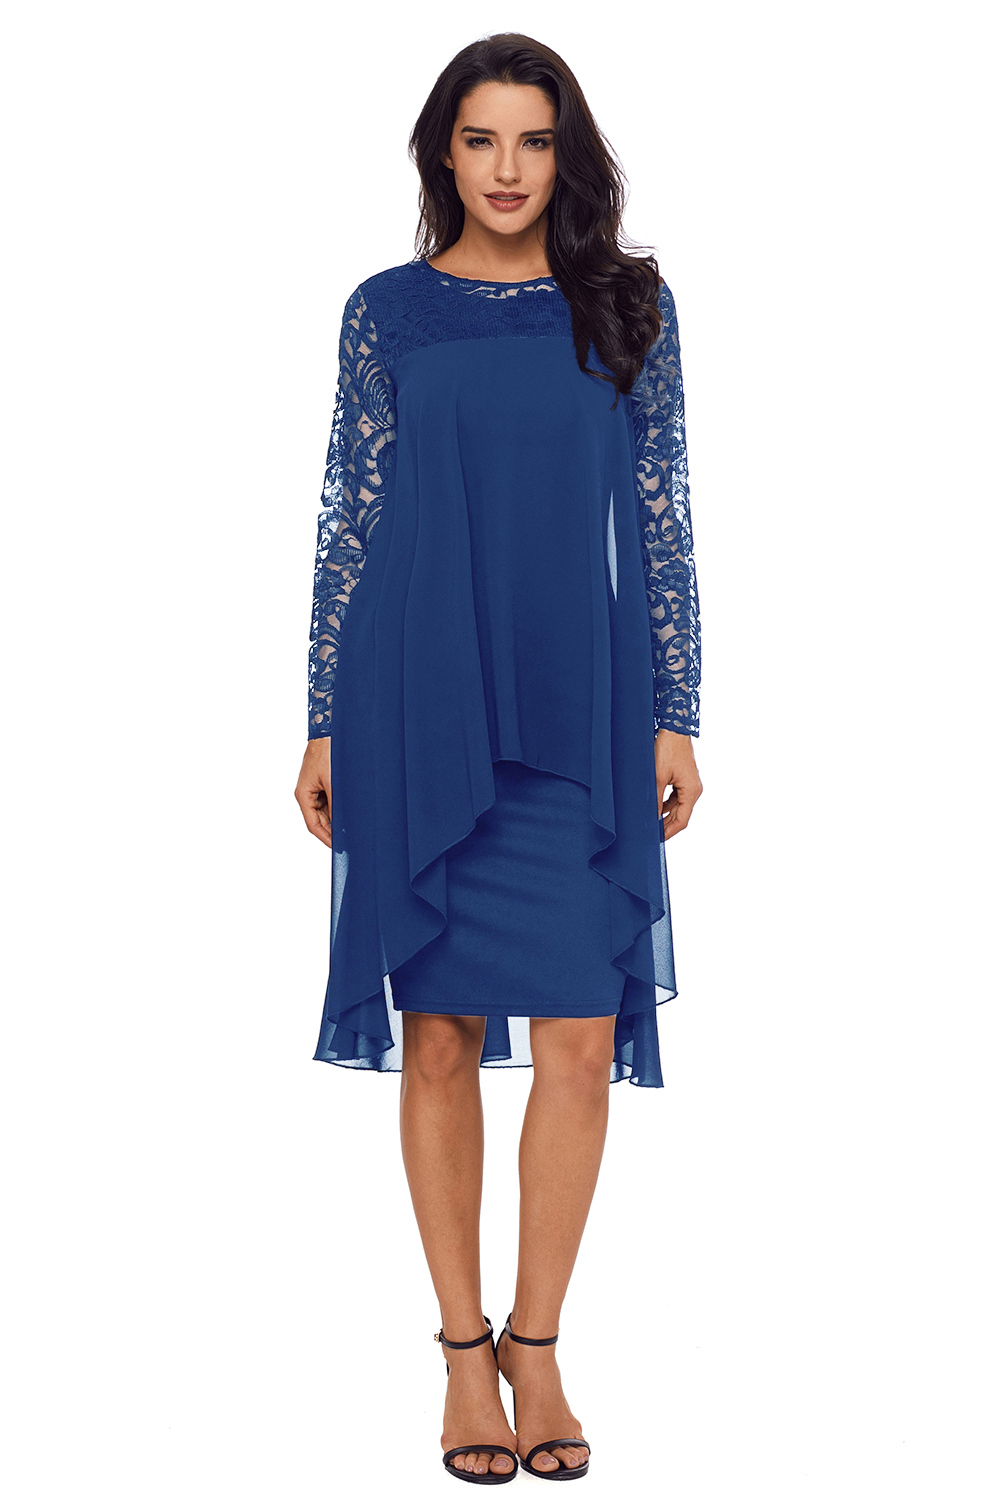 edf96857d2 Navy Blue Lace Long Sleeve Double Layer Midi Dress ZEKELA.com. Loading zoom